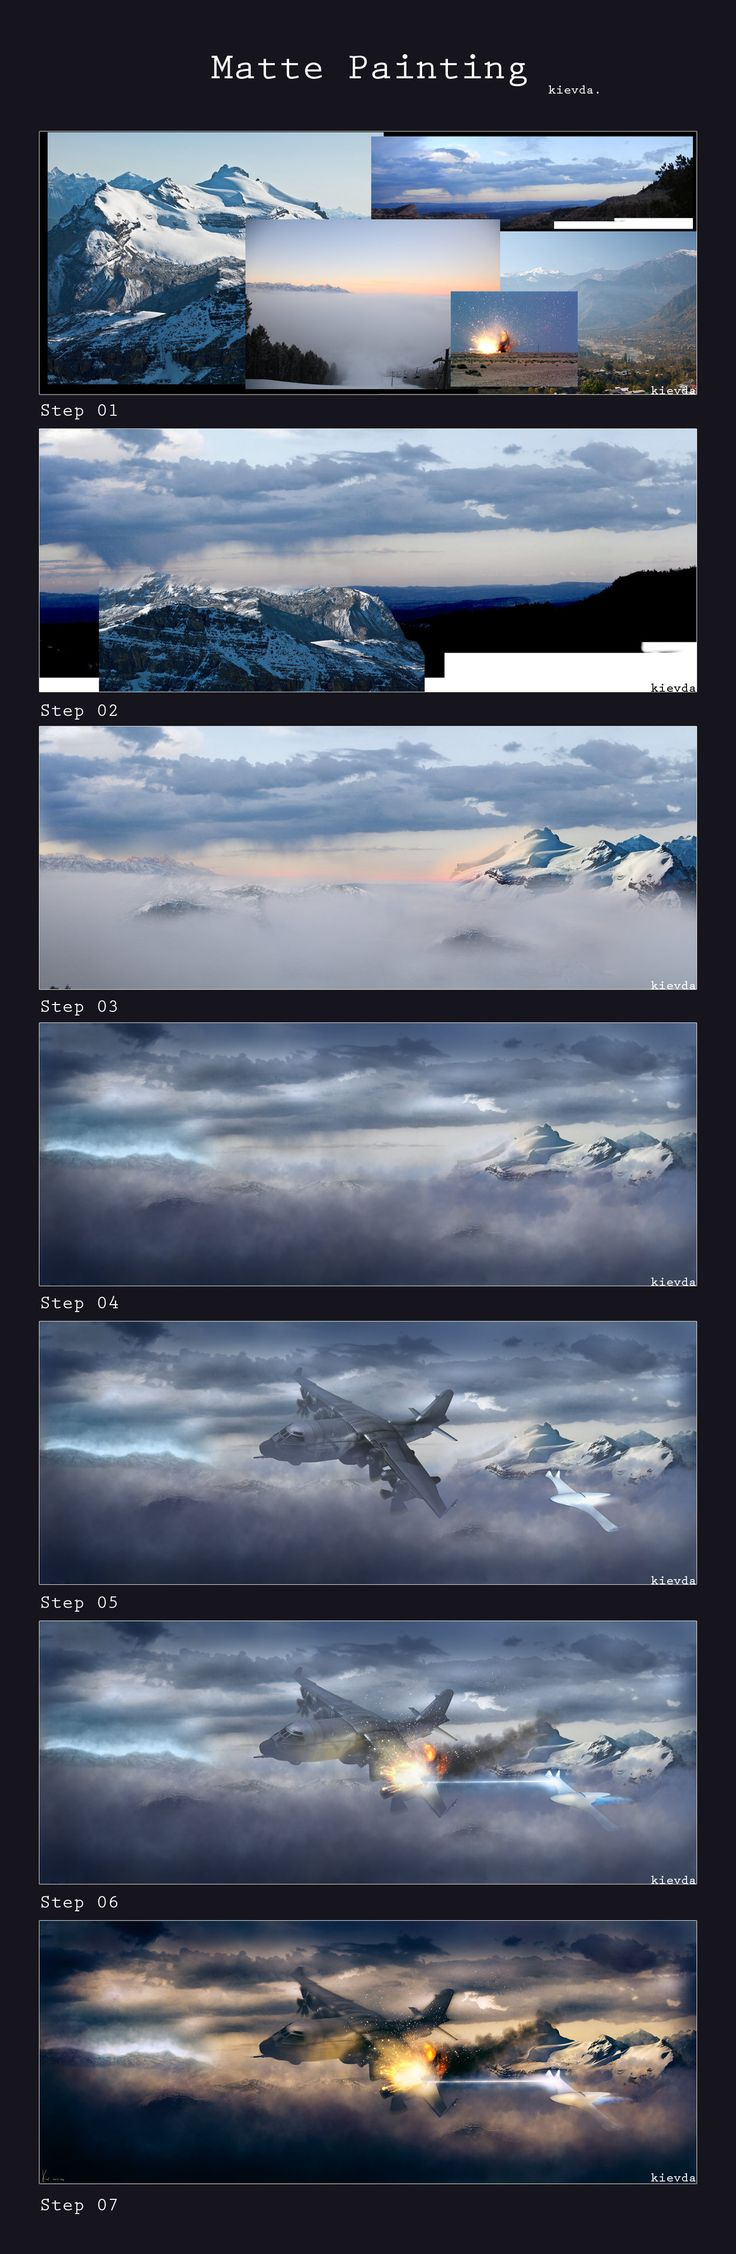 Matte Painting Walkingthrough by kievda.deviantart.com on @deviantART